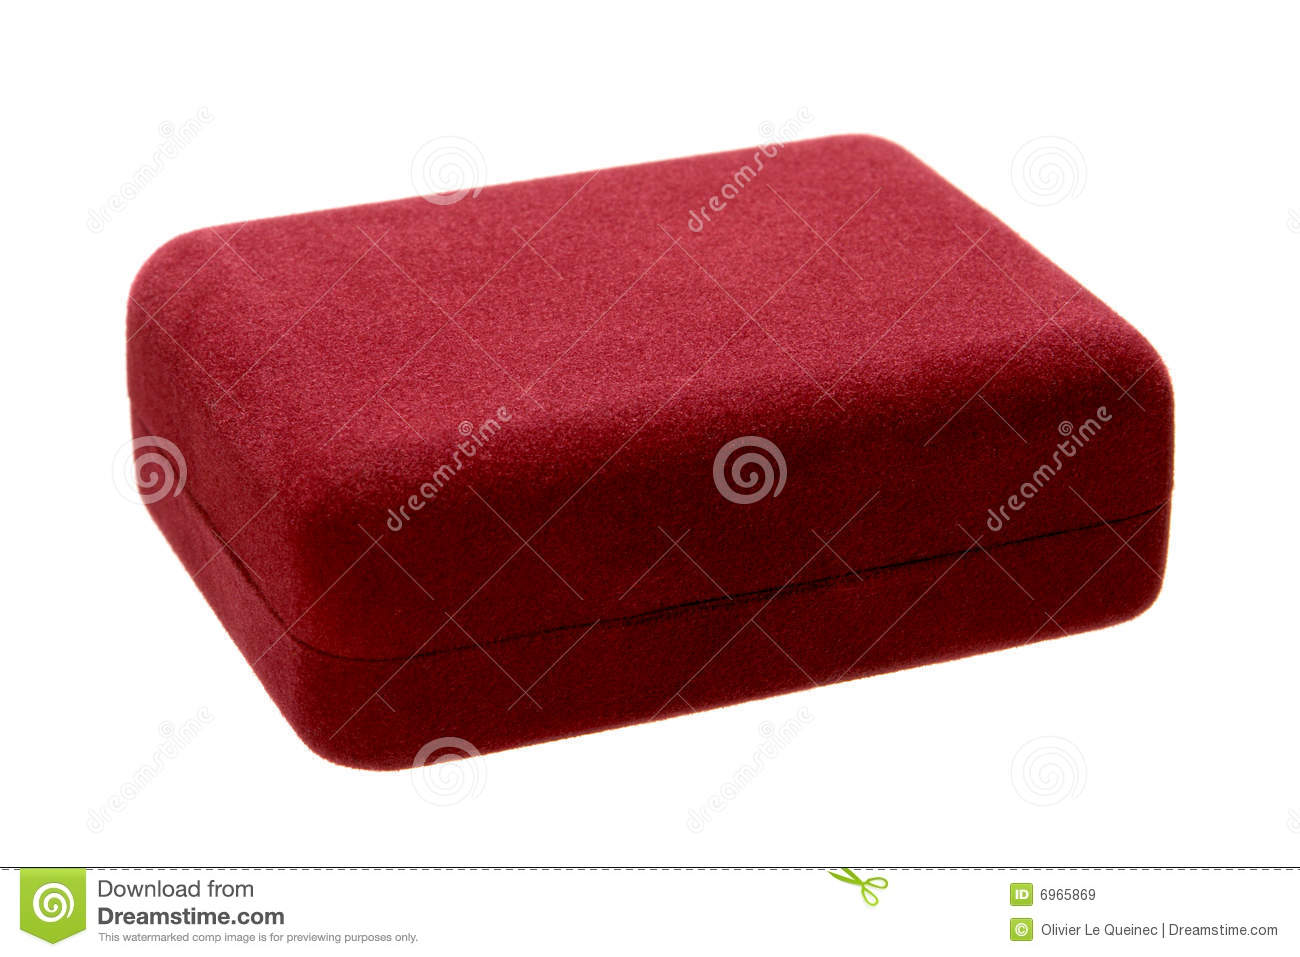 Jewelry gift box with red velvet surface isolated royalty for Red velvet jewelry gift boxes